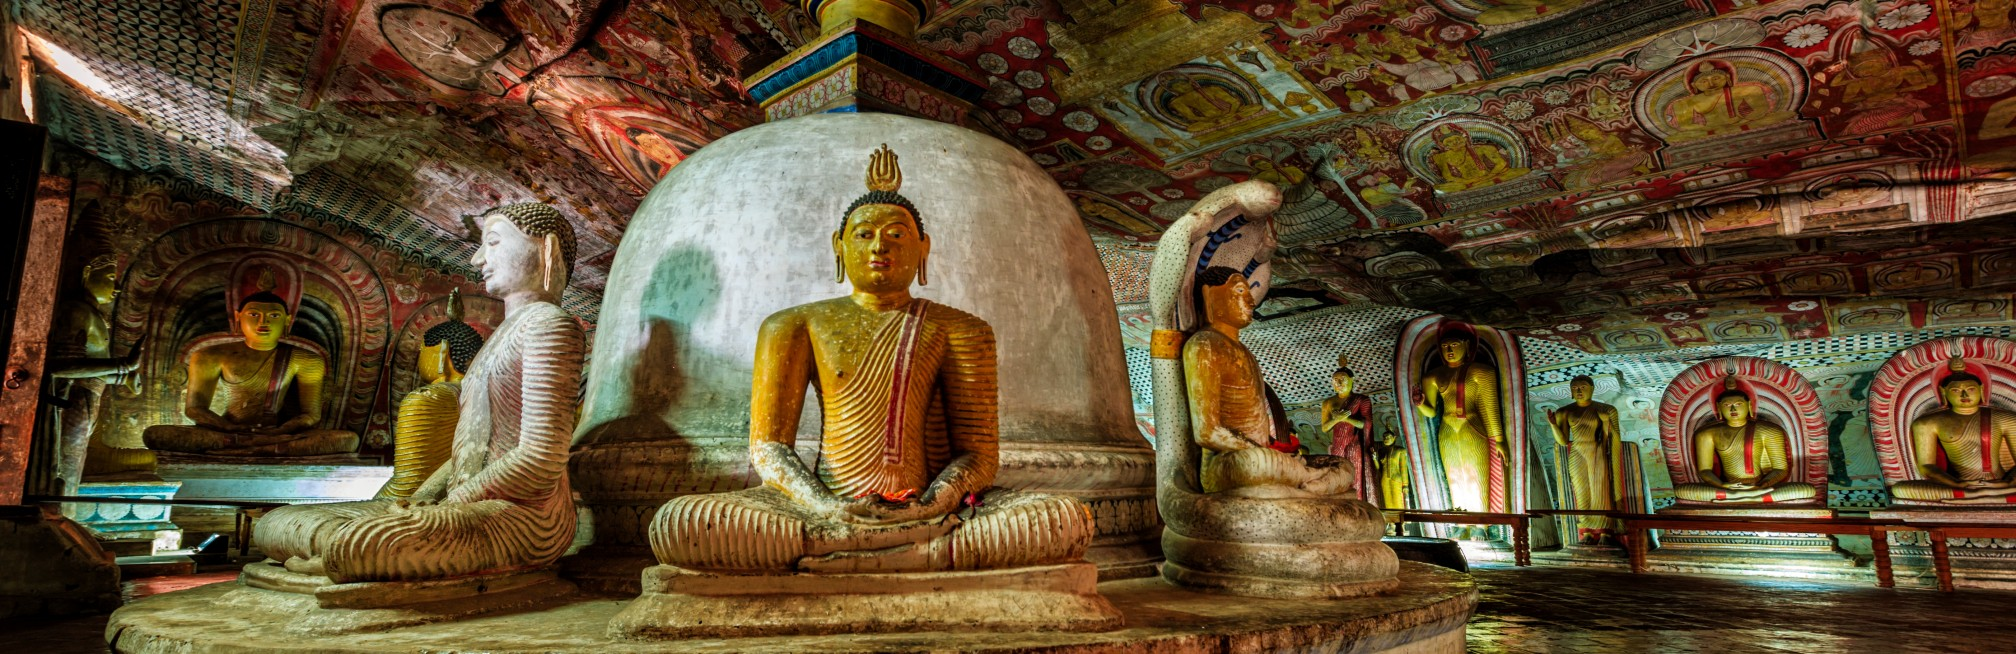 The insider guide to Sri Lanka